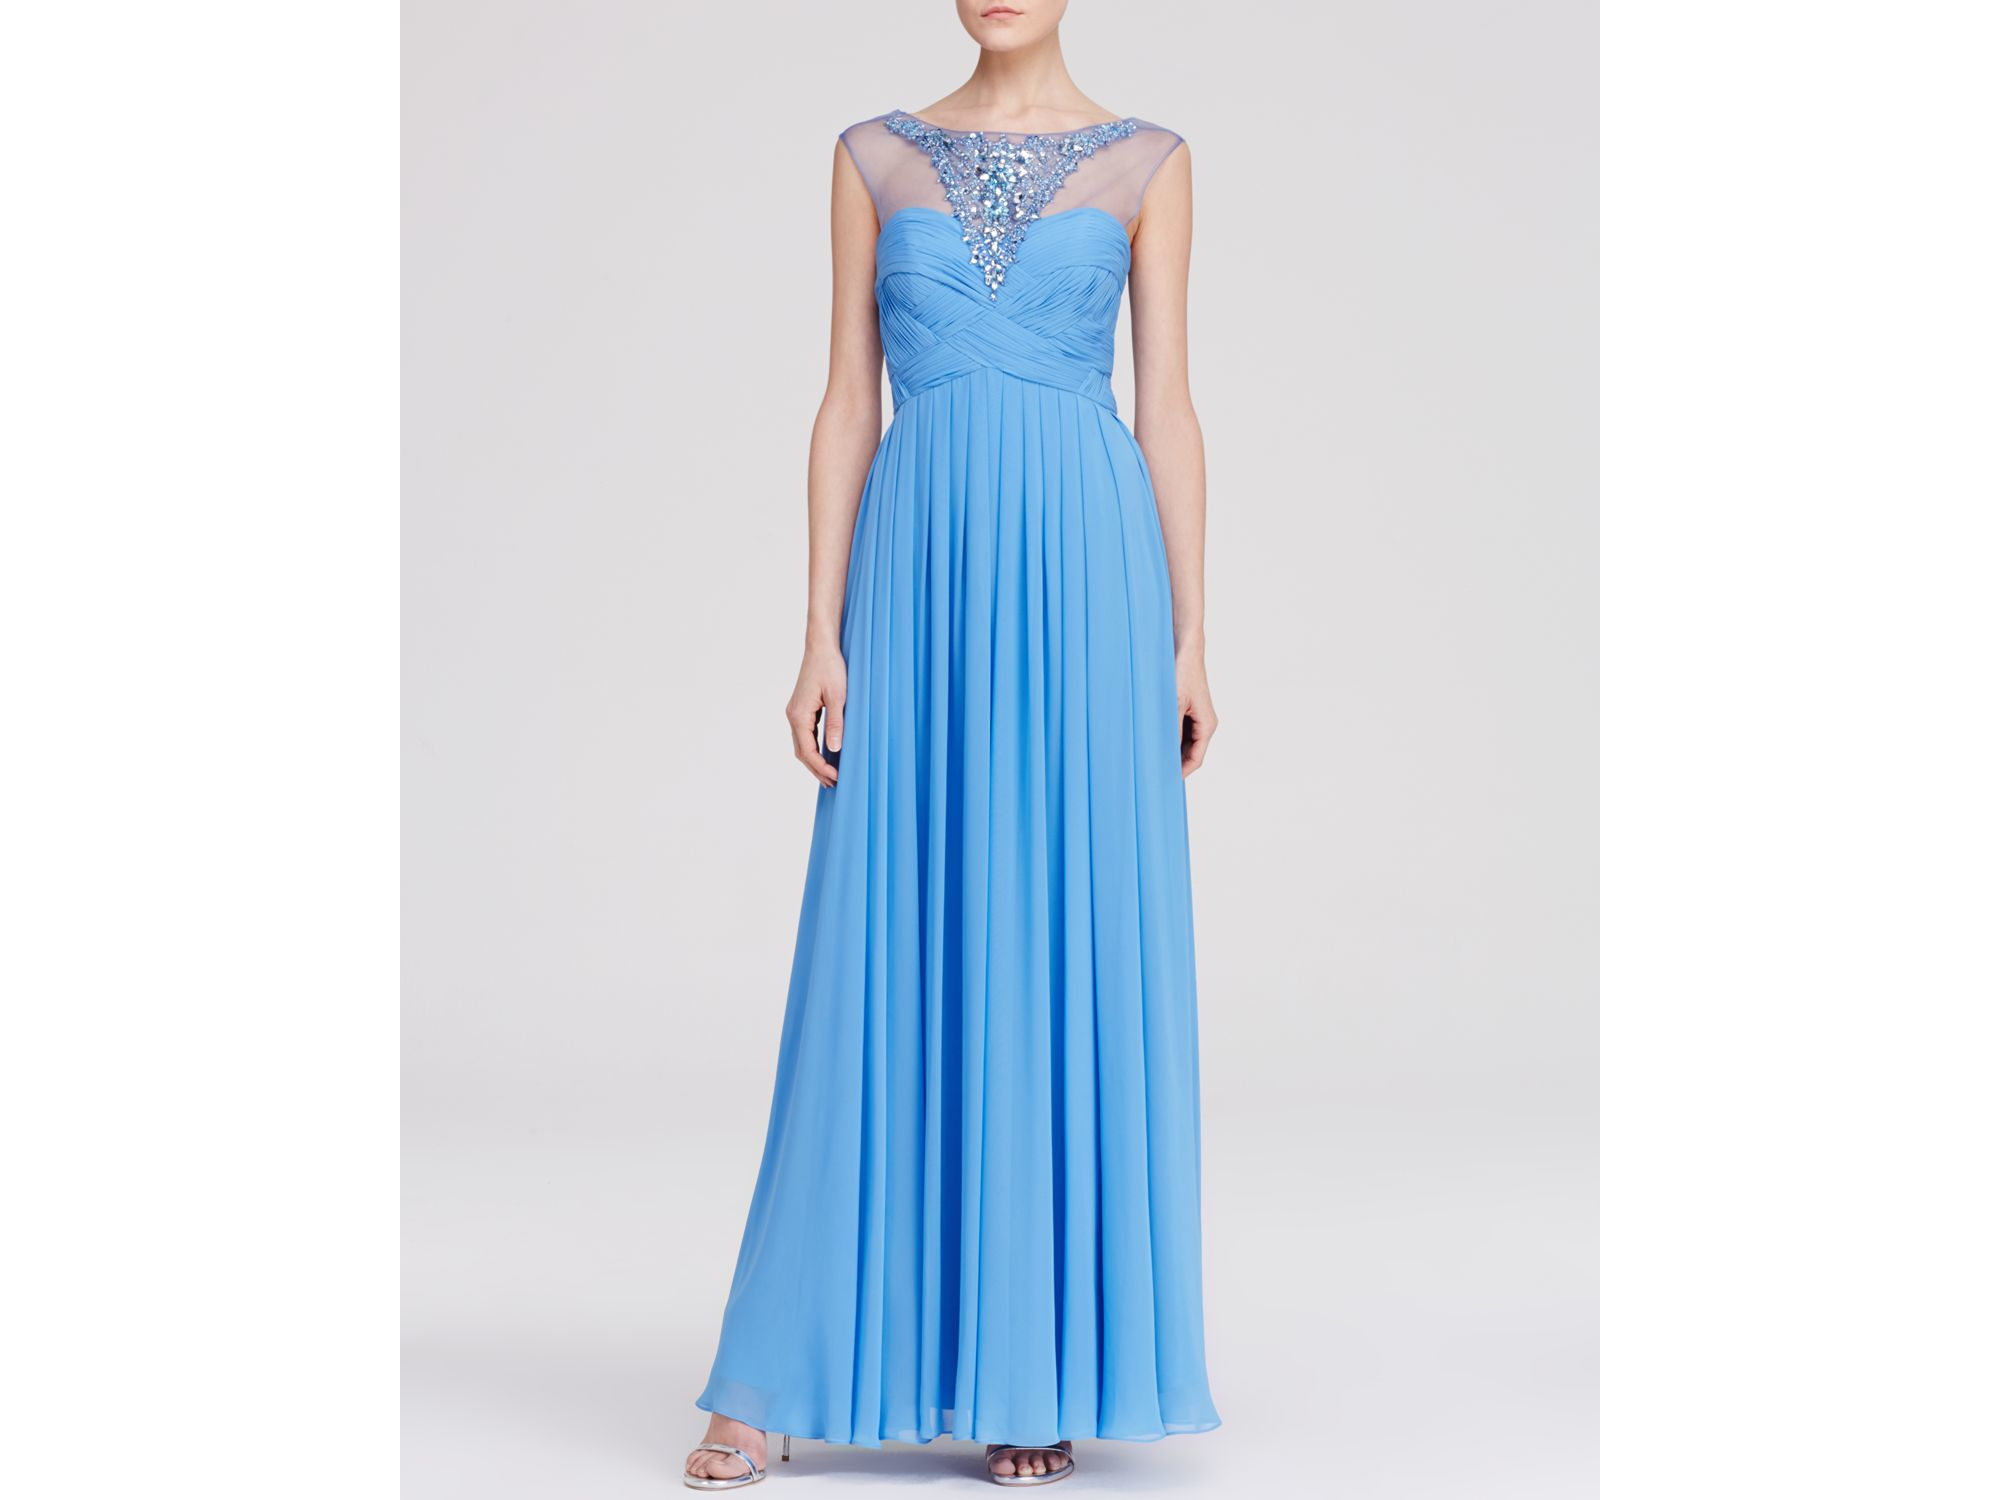 Lyst - Js Collections Gown - Embellished Yoke Chiffon in Blue